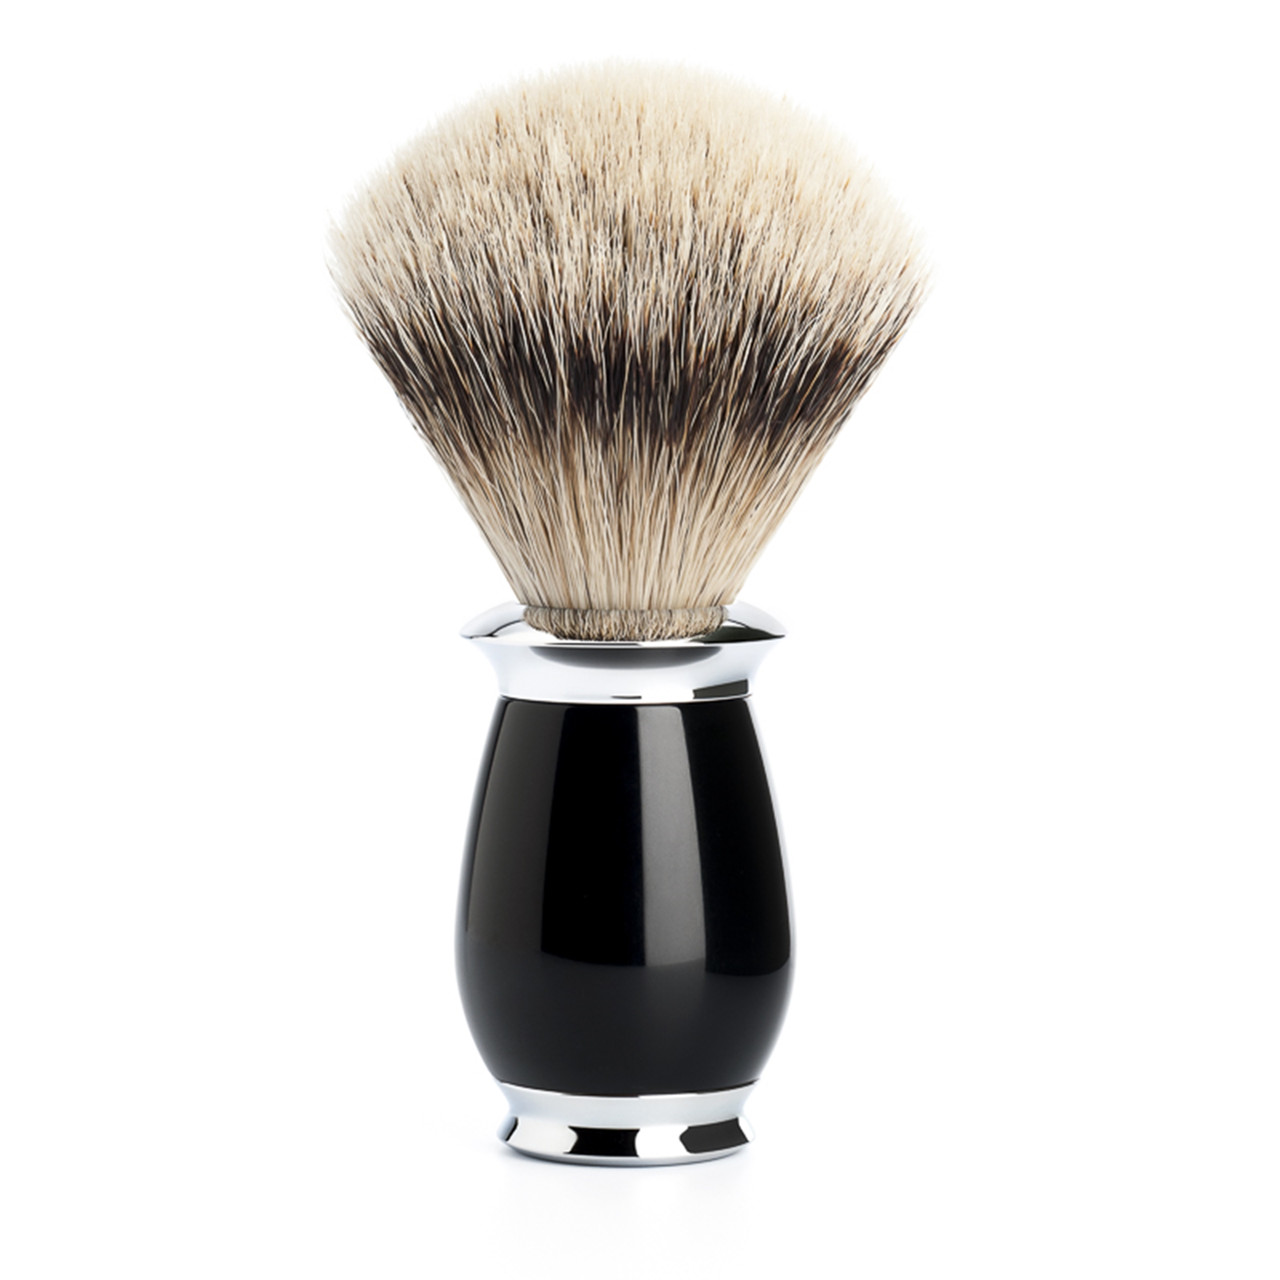 Image of   Mühle Silvertip Barberkost, 21 mm, Purist, Sort Kunstharpiks